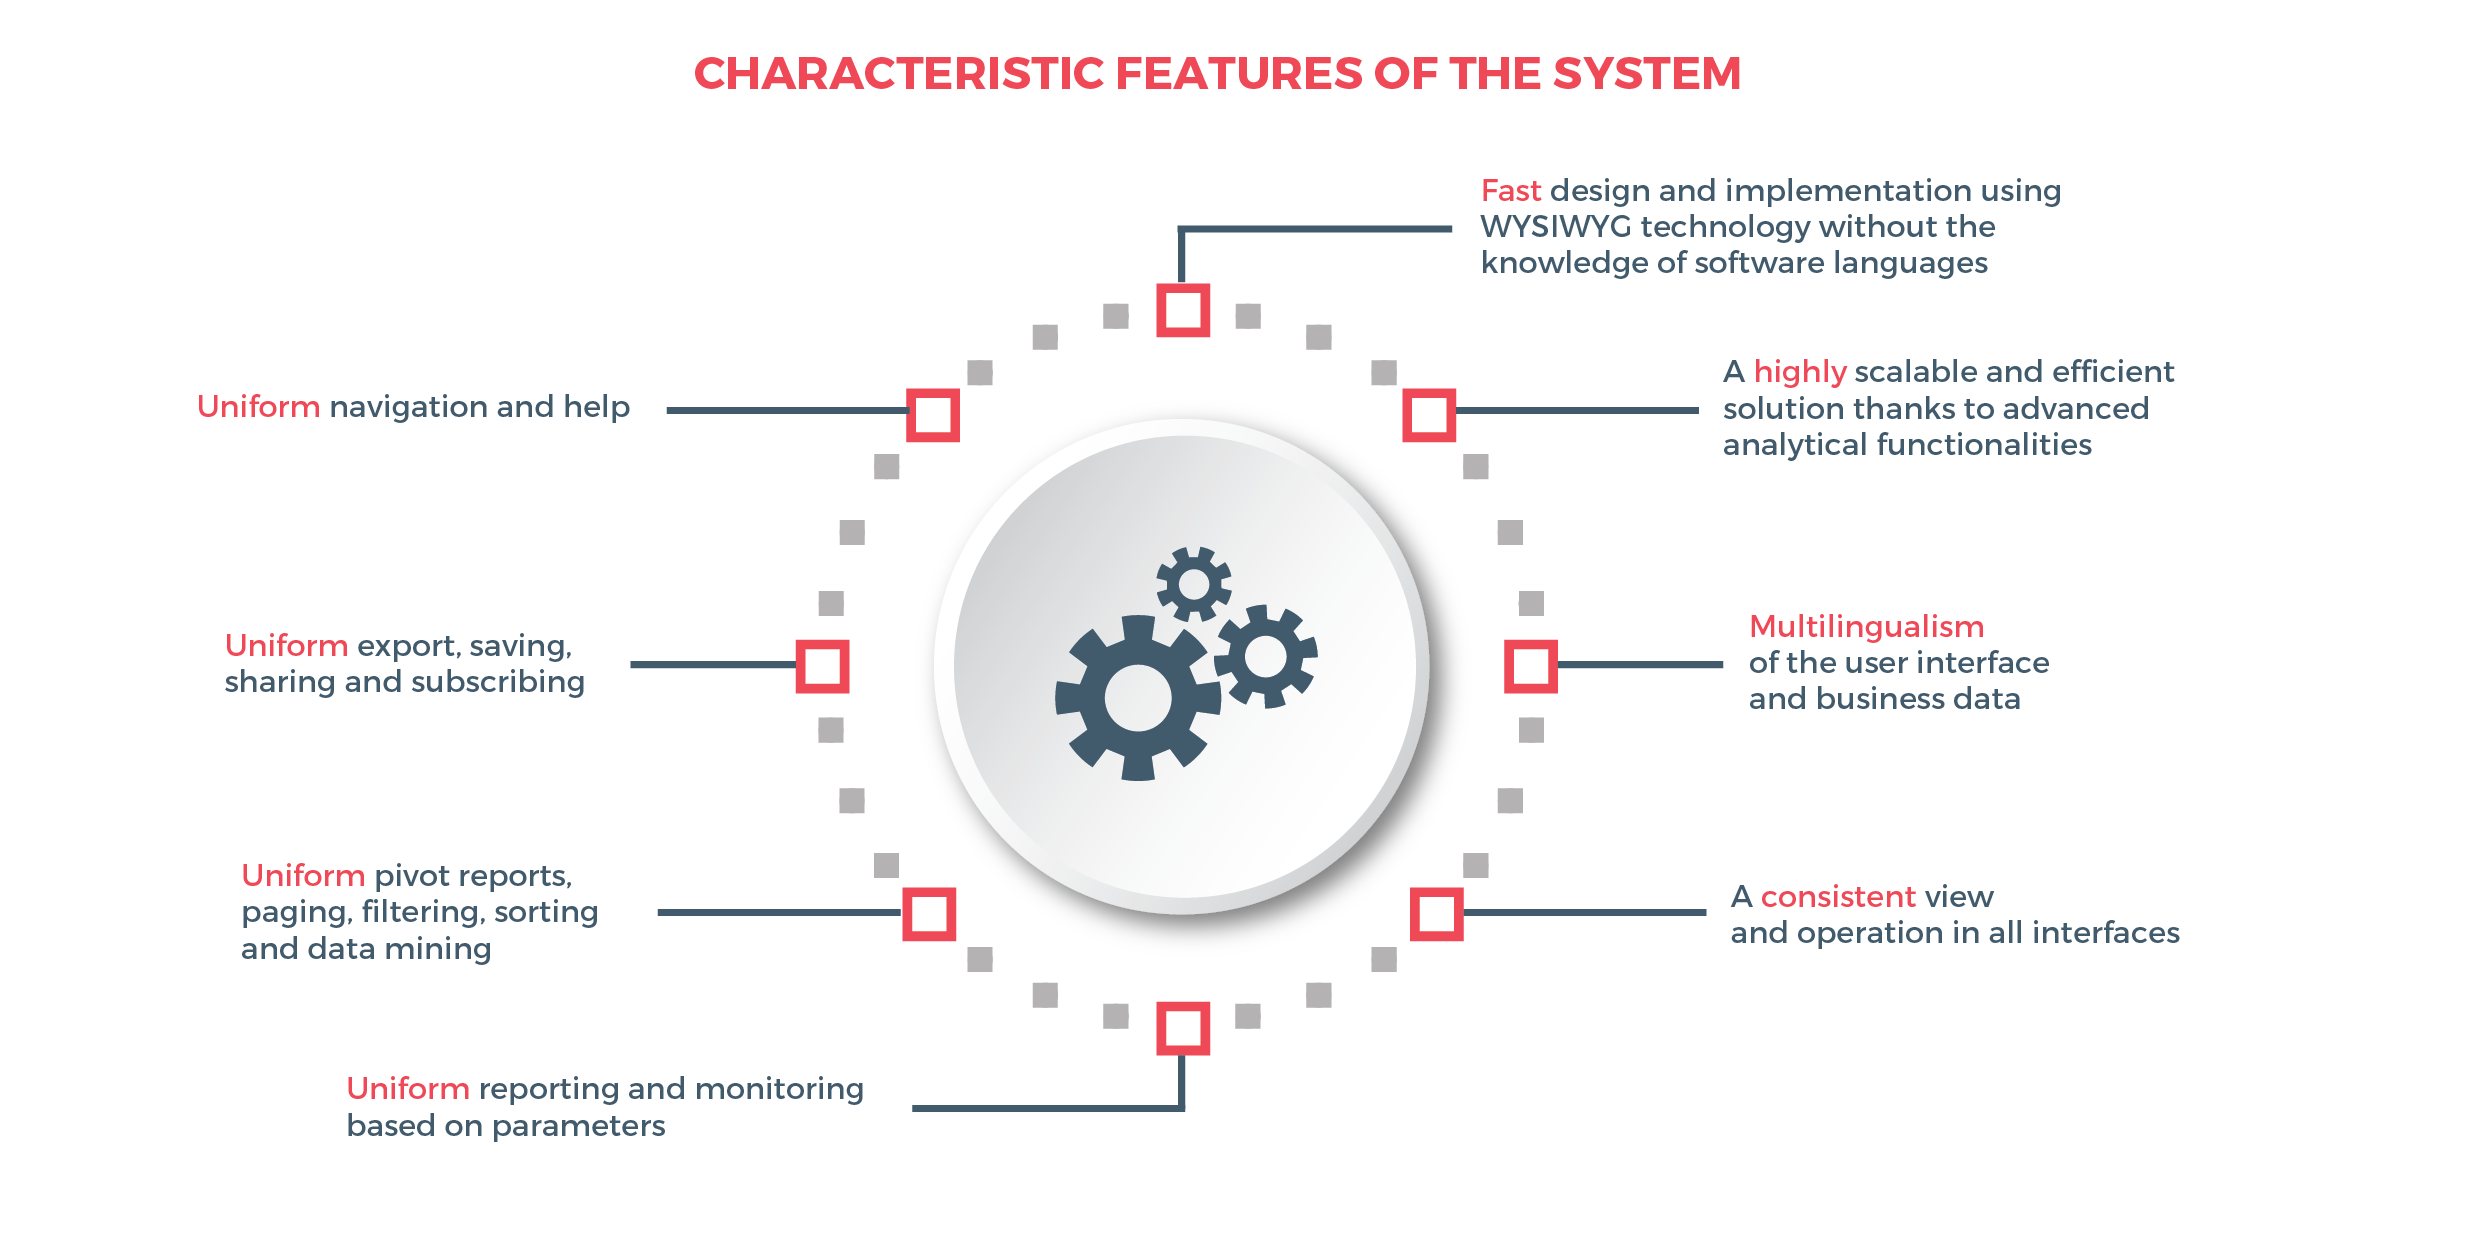 infoconsulting-BI-features-of-the-system